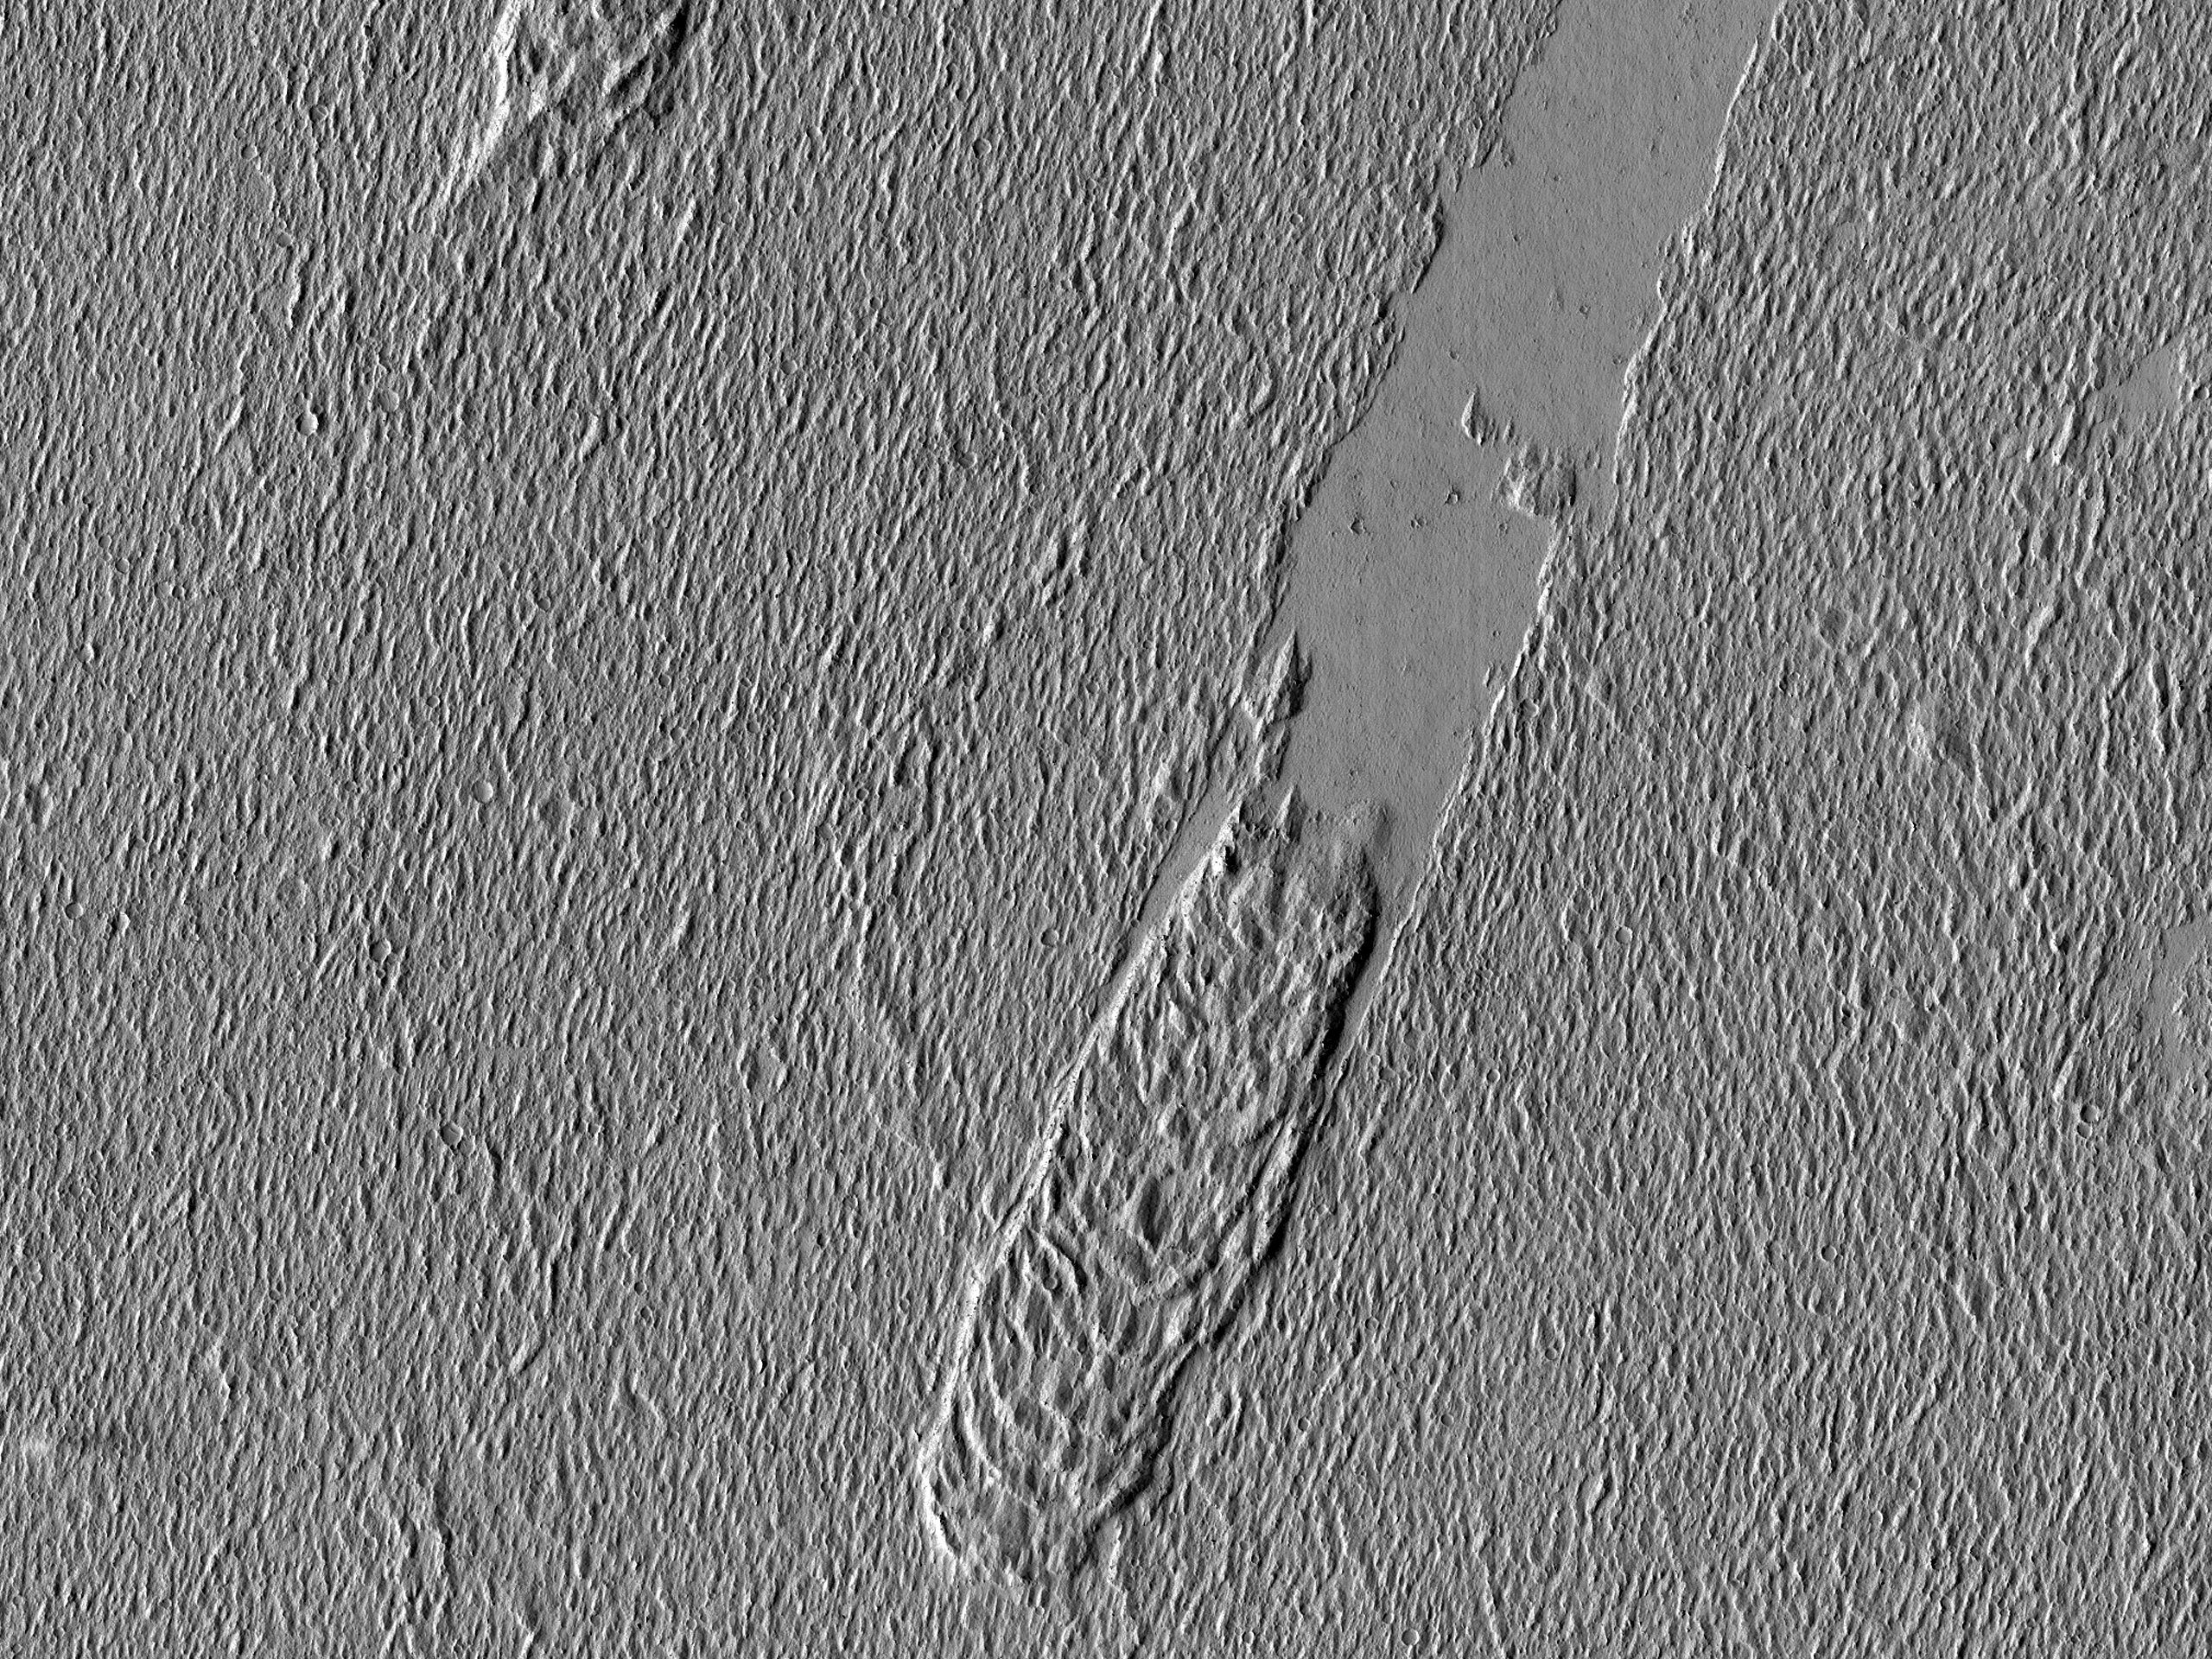 Lava Crust and Wakes in Amazonis Planitia